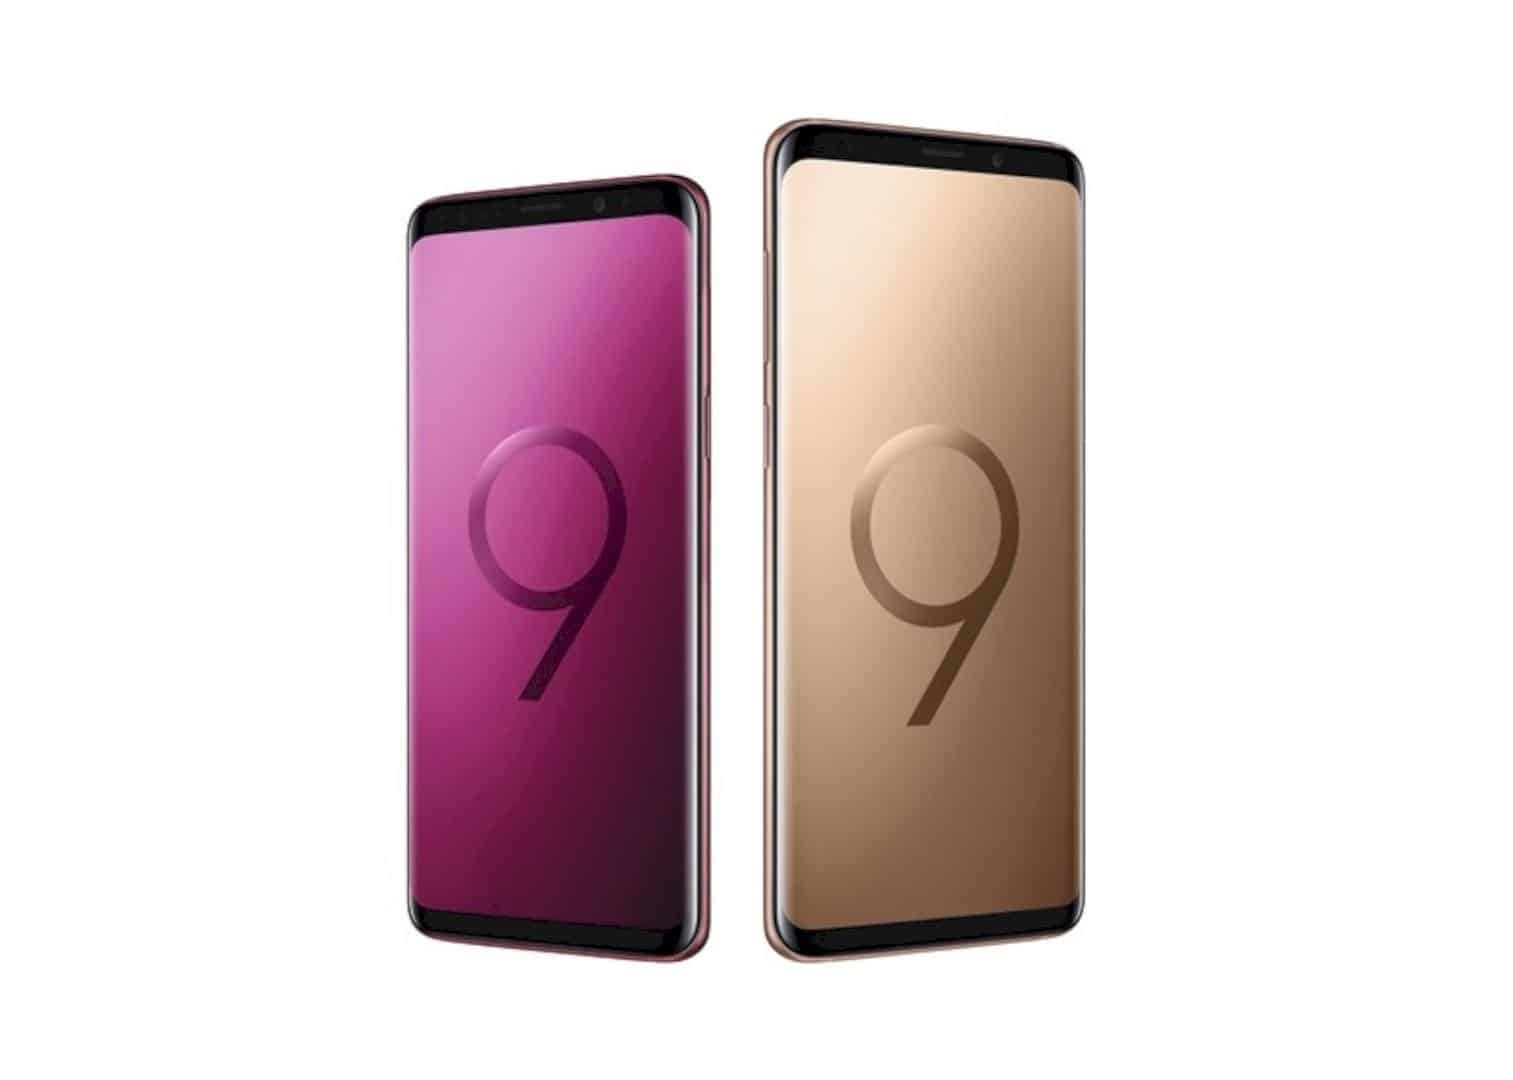 Sunrise Gold And Burgundy Red Editions For Galaxy S9 And S9 6